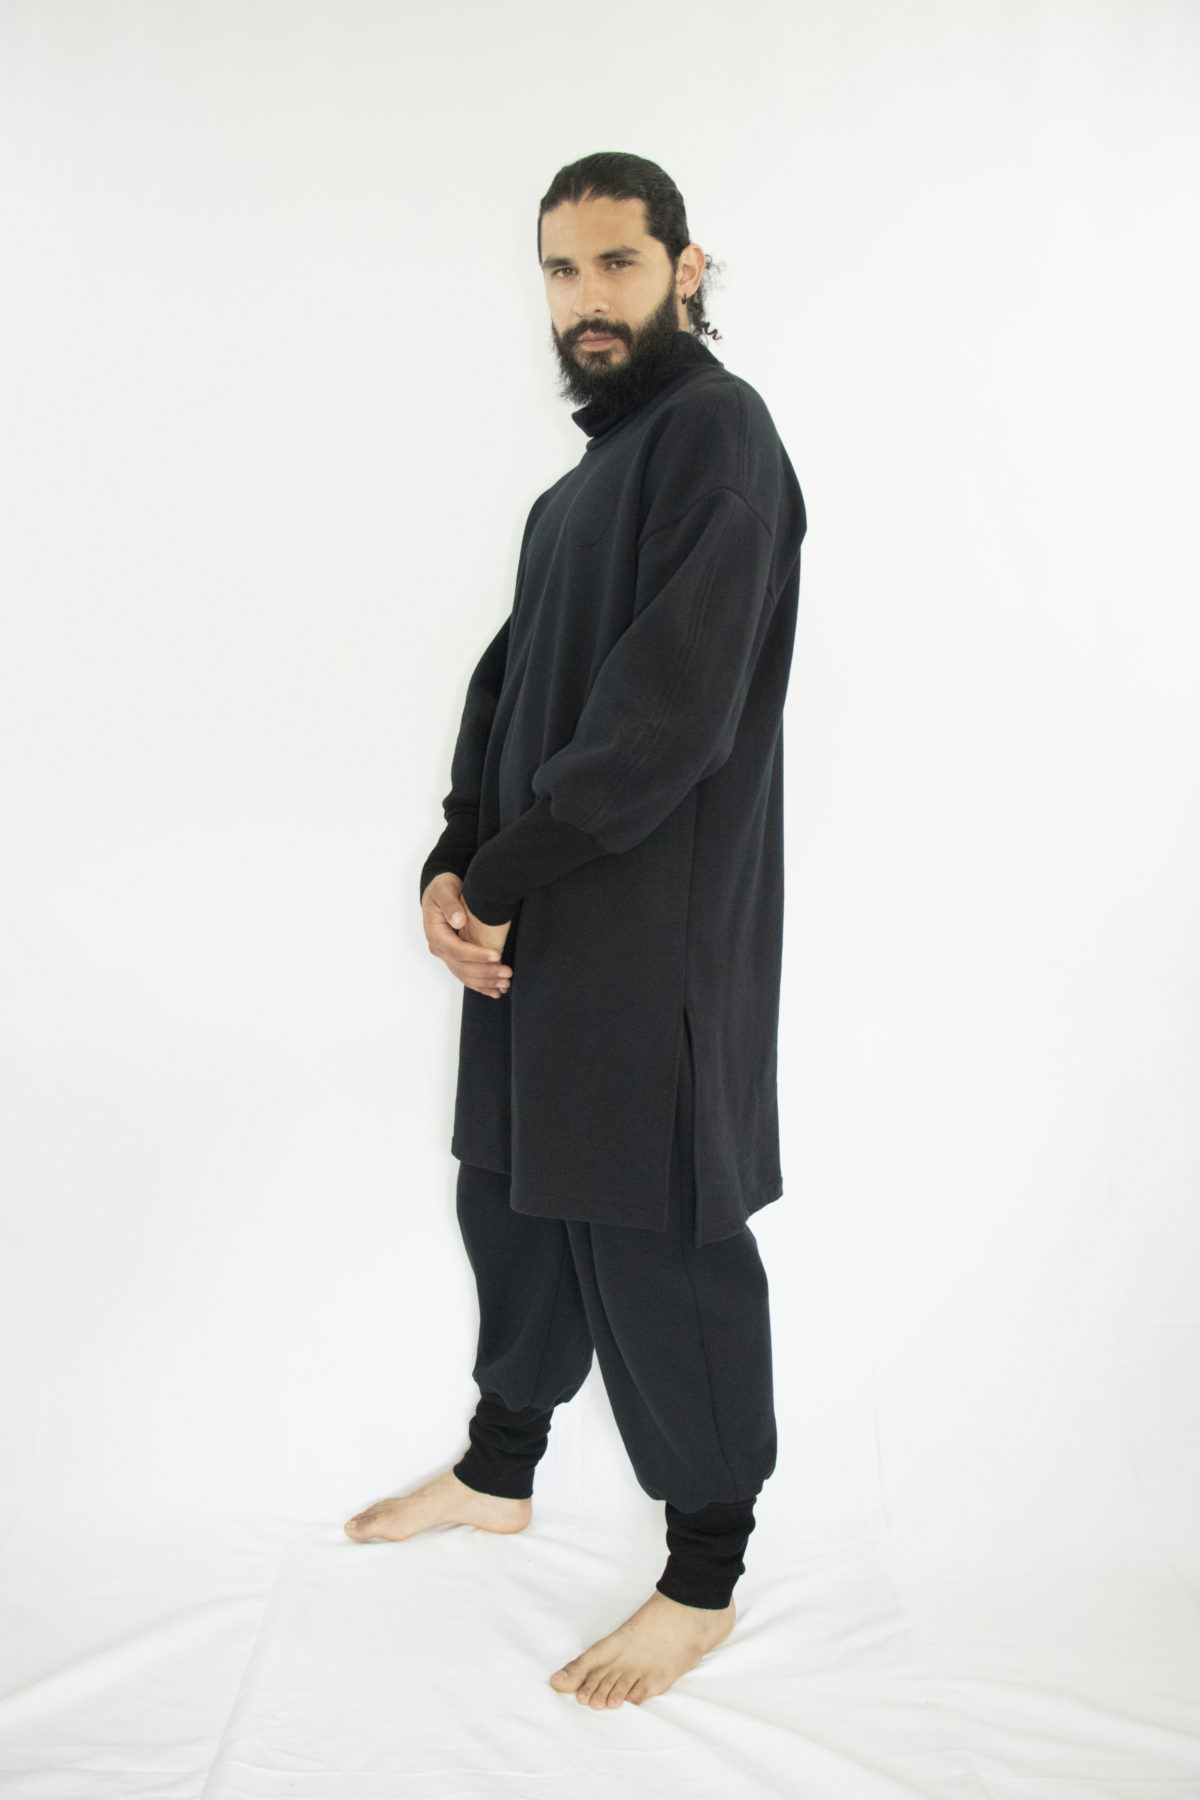 Man wearing organic black unisex tunic with long sleeves and high collar